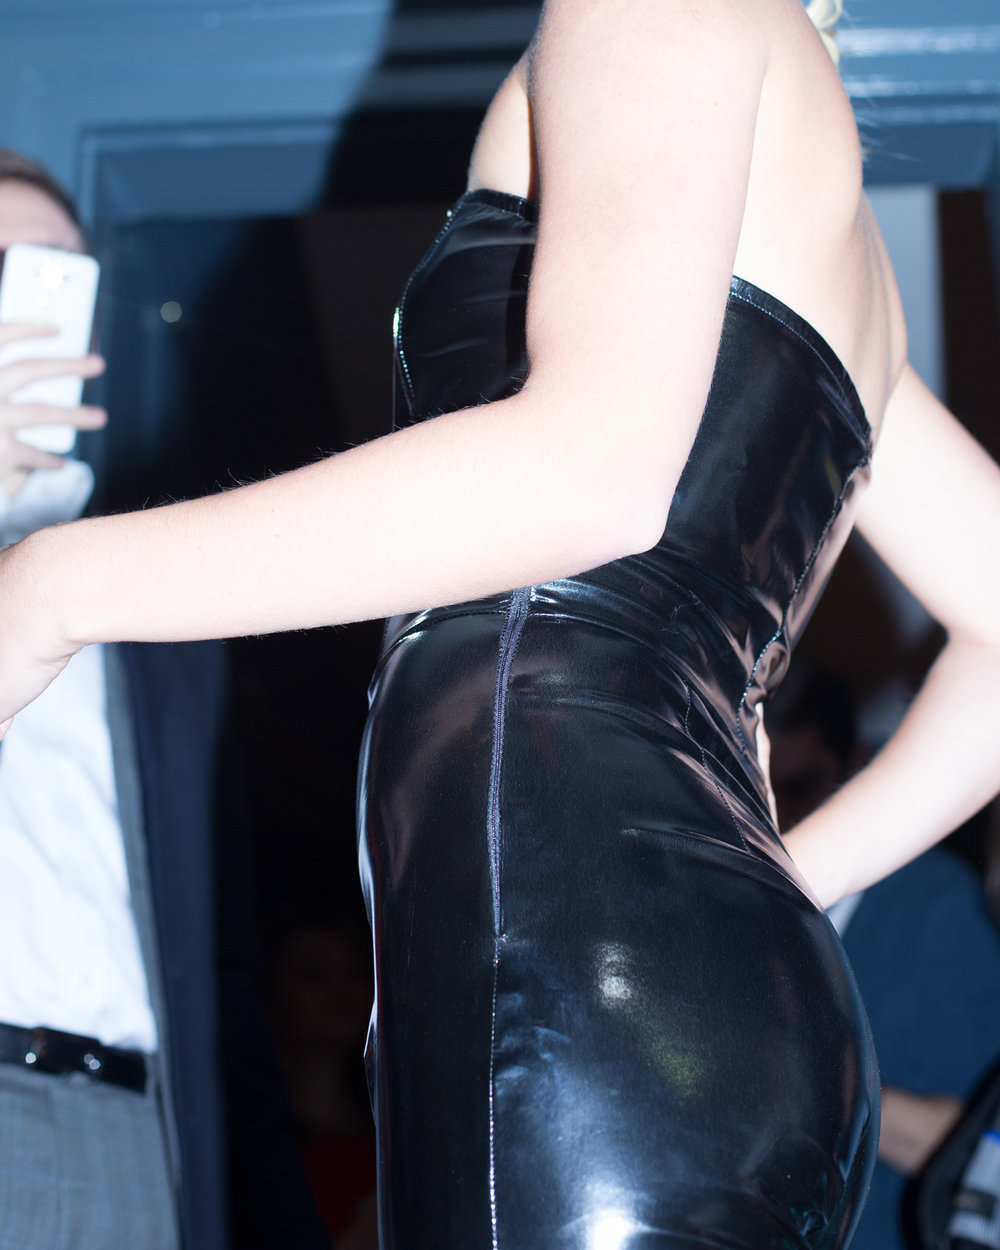 6sophie_gladstone_latex_catwalk_phone.jpg